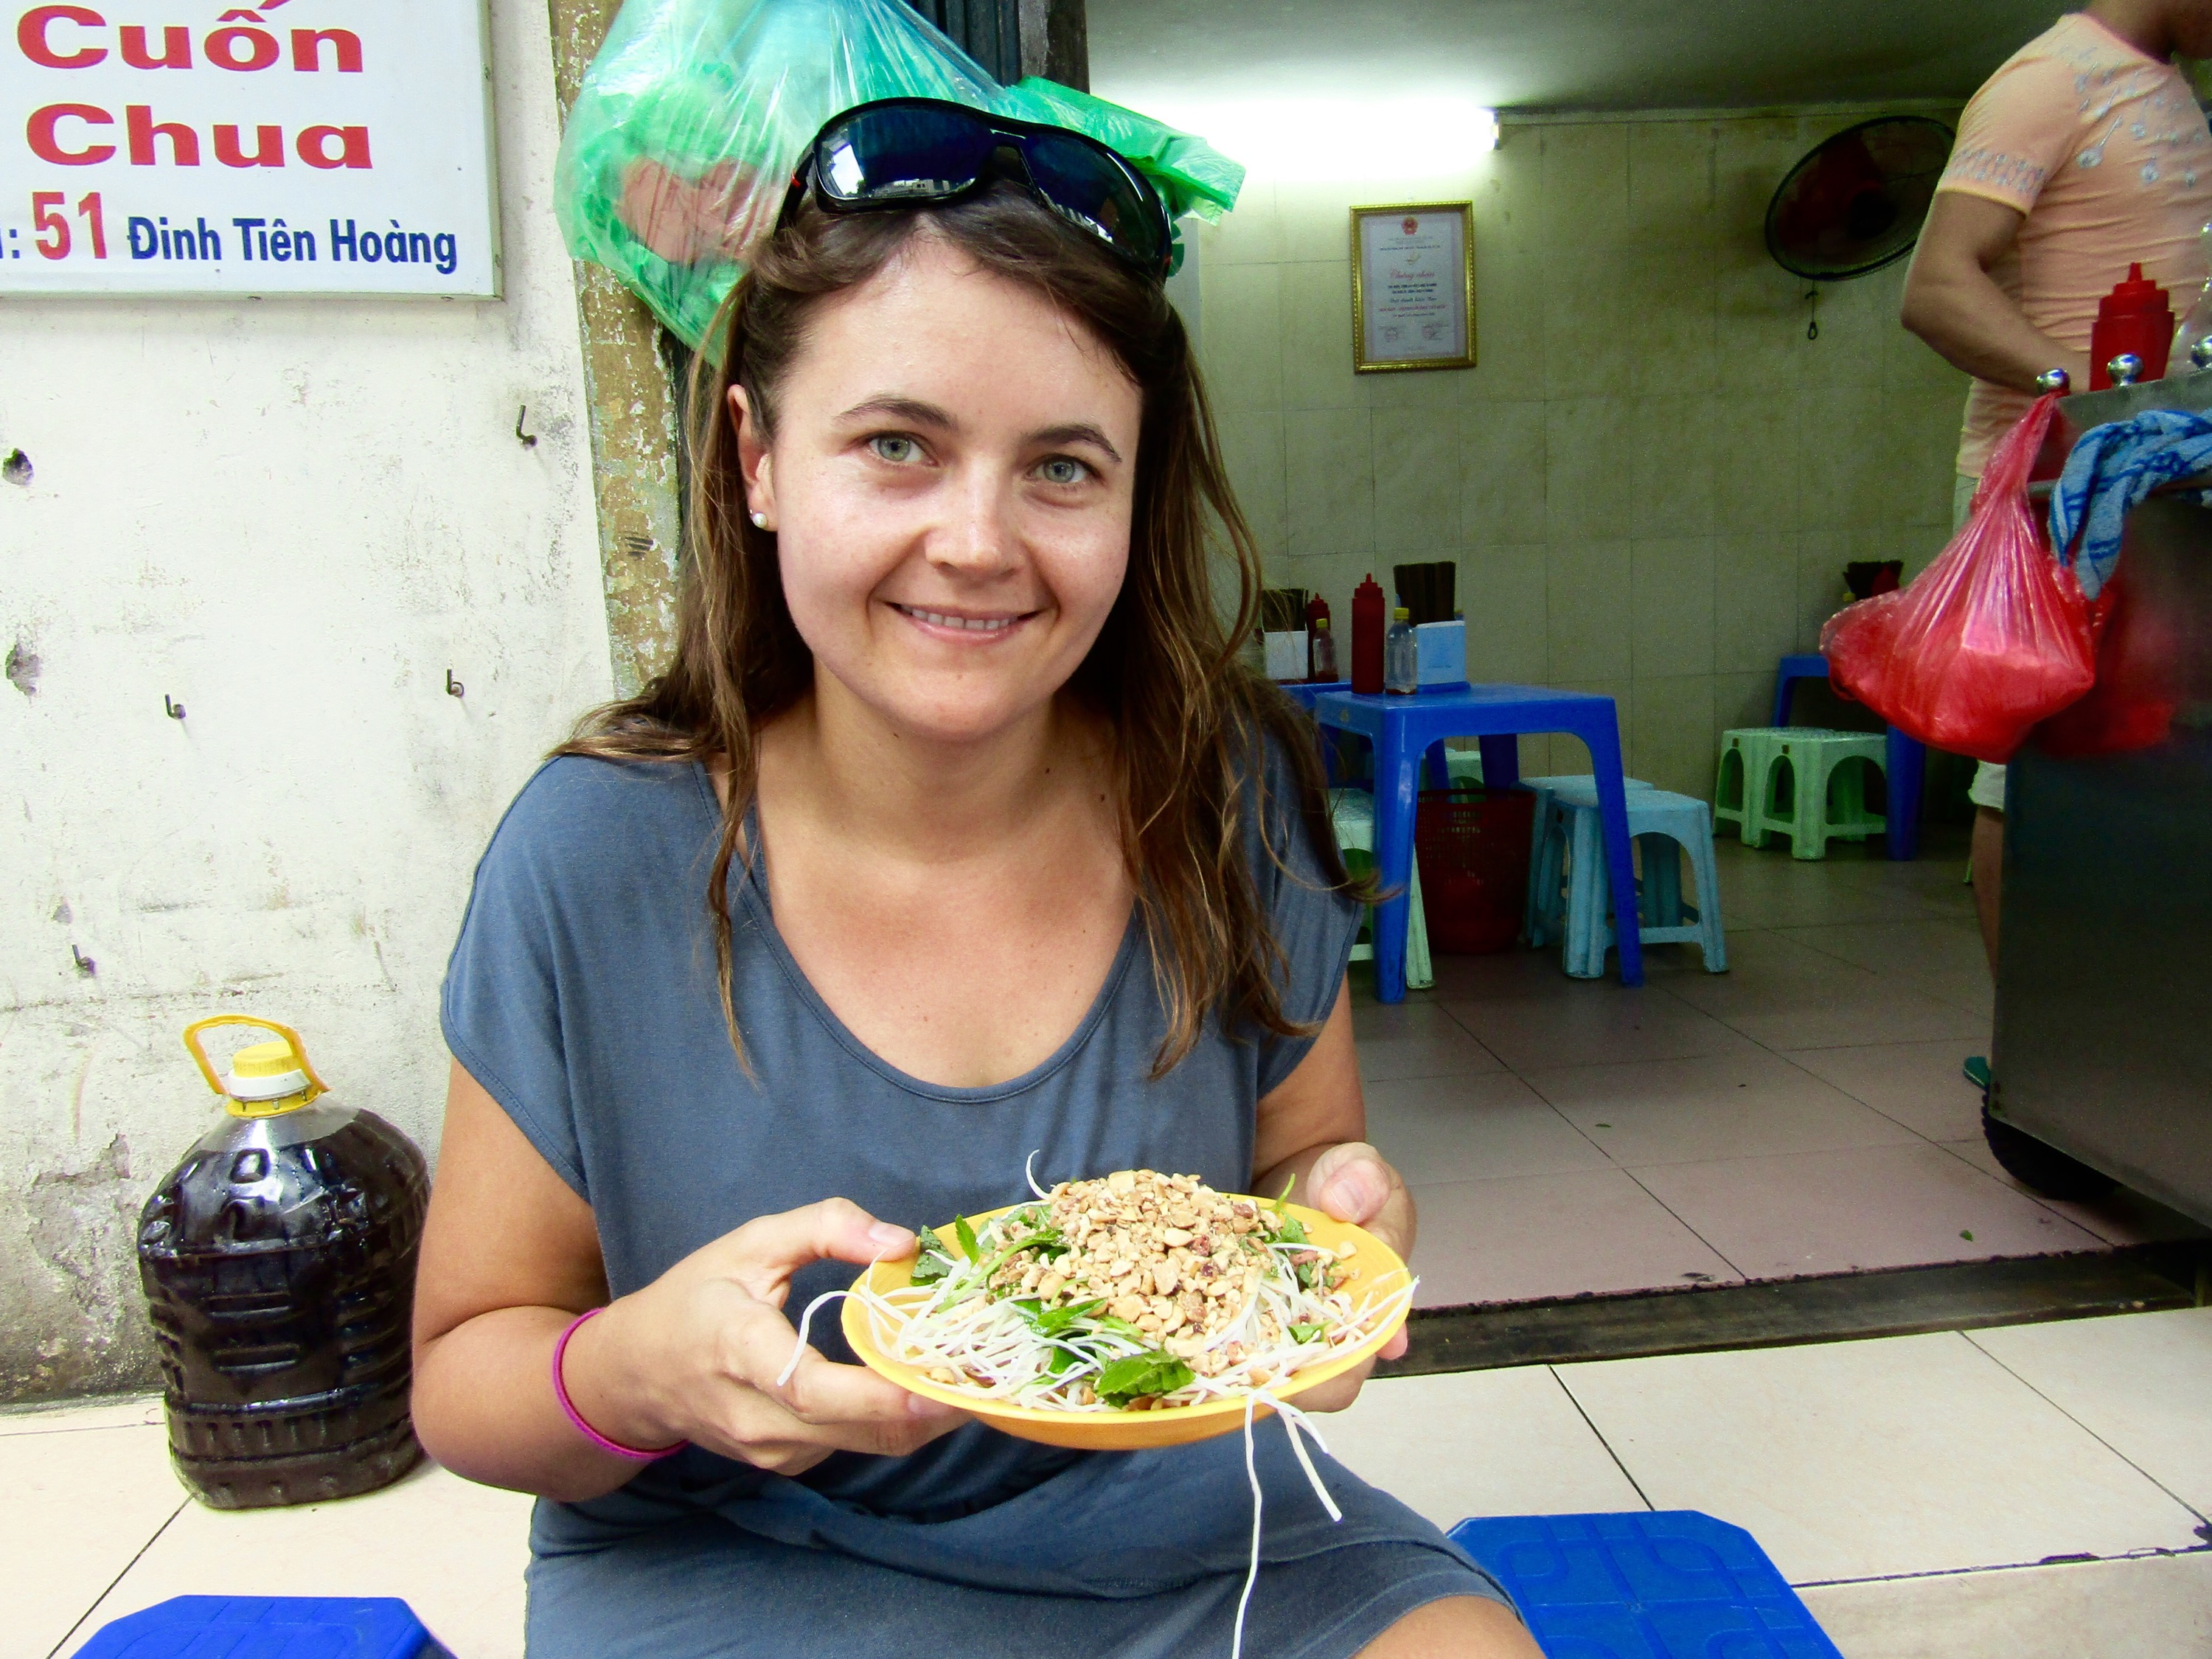 Hanoi's version of green papaya salad, a dish that's also popular in Thailand.